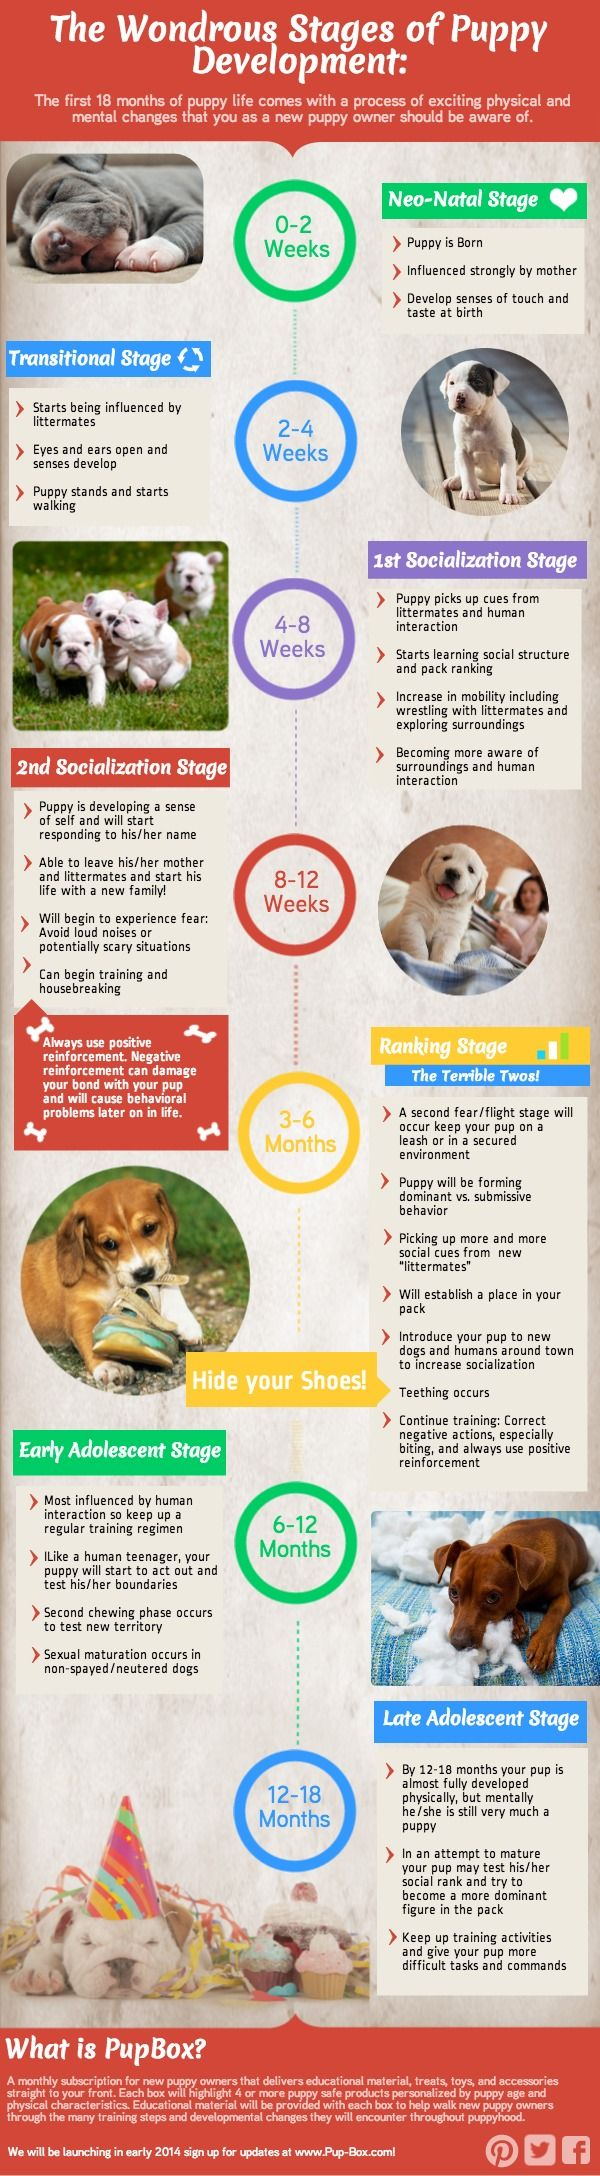 Puppy development stages infographic. Check it out and